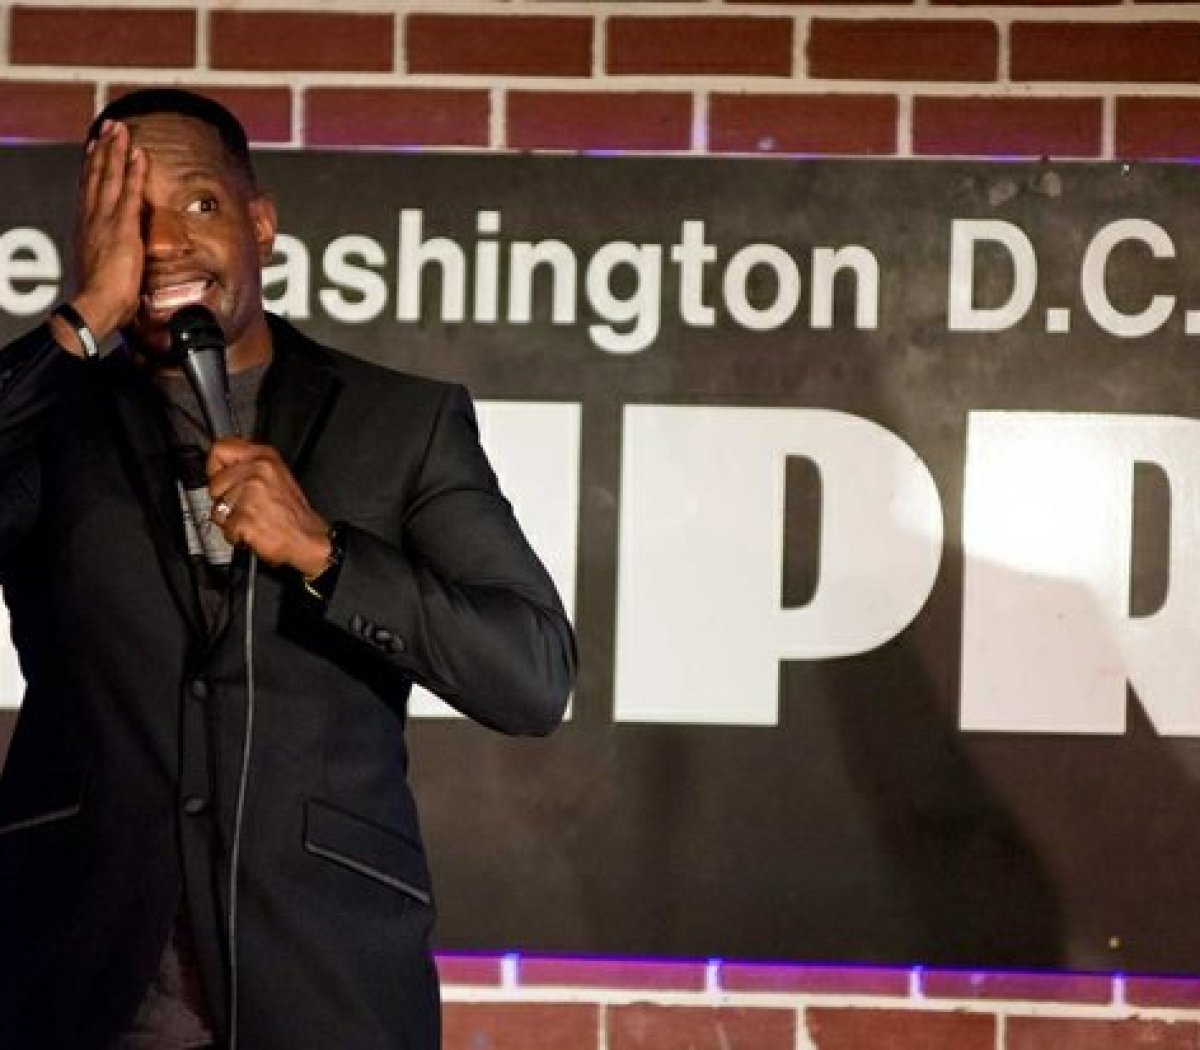 NBC's Last Comic Standing Season 8 winner, Rod Man, performs his stand-up routine about one-eye Frank at the DC Improv, Friday, April 15, 2016 in northwest. /Photo by Patricia Little @5feet2